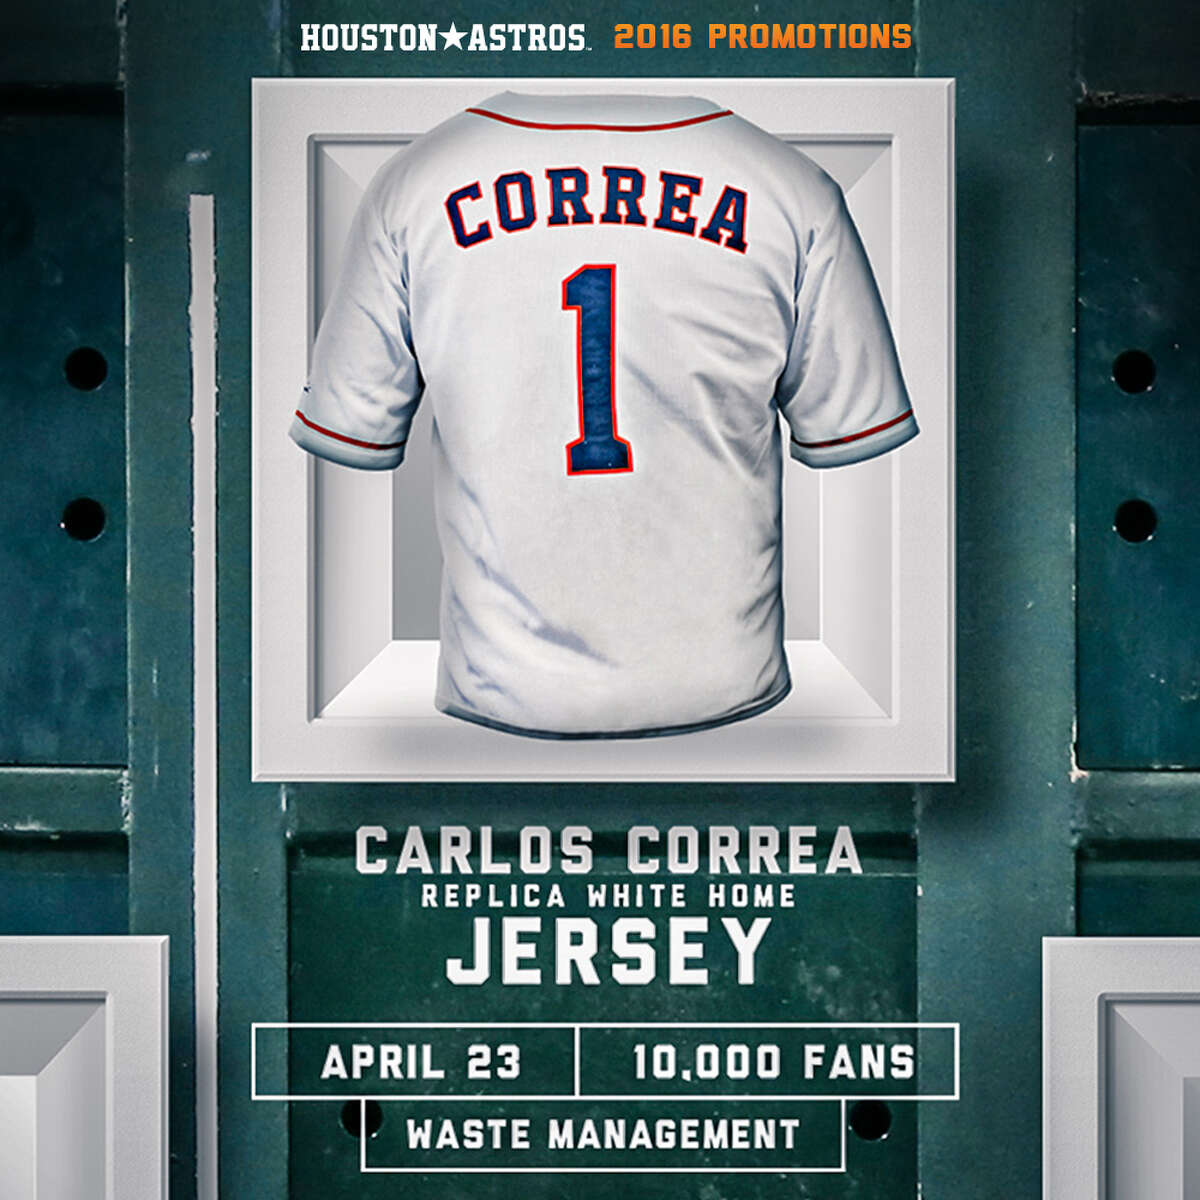 Carlos Correa Replica White Home Jersey  (Presented by Waste Management) Saturday, April 23 vs. Boston Red Sox First 10,000 fans